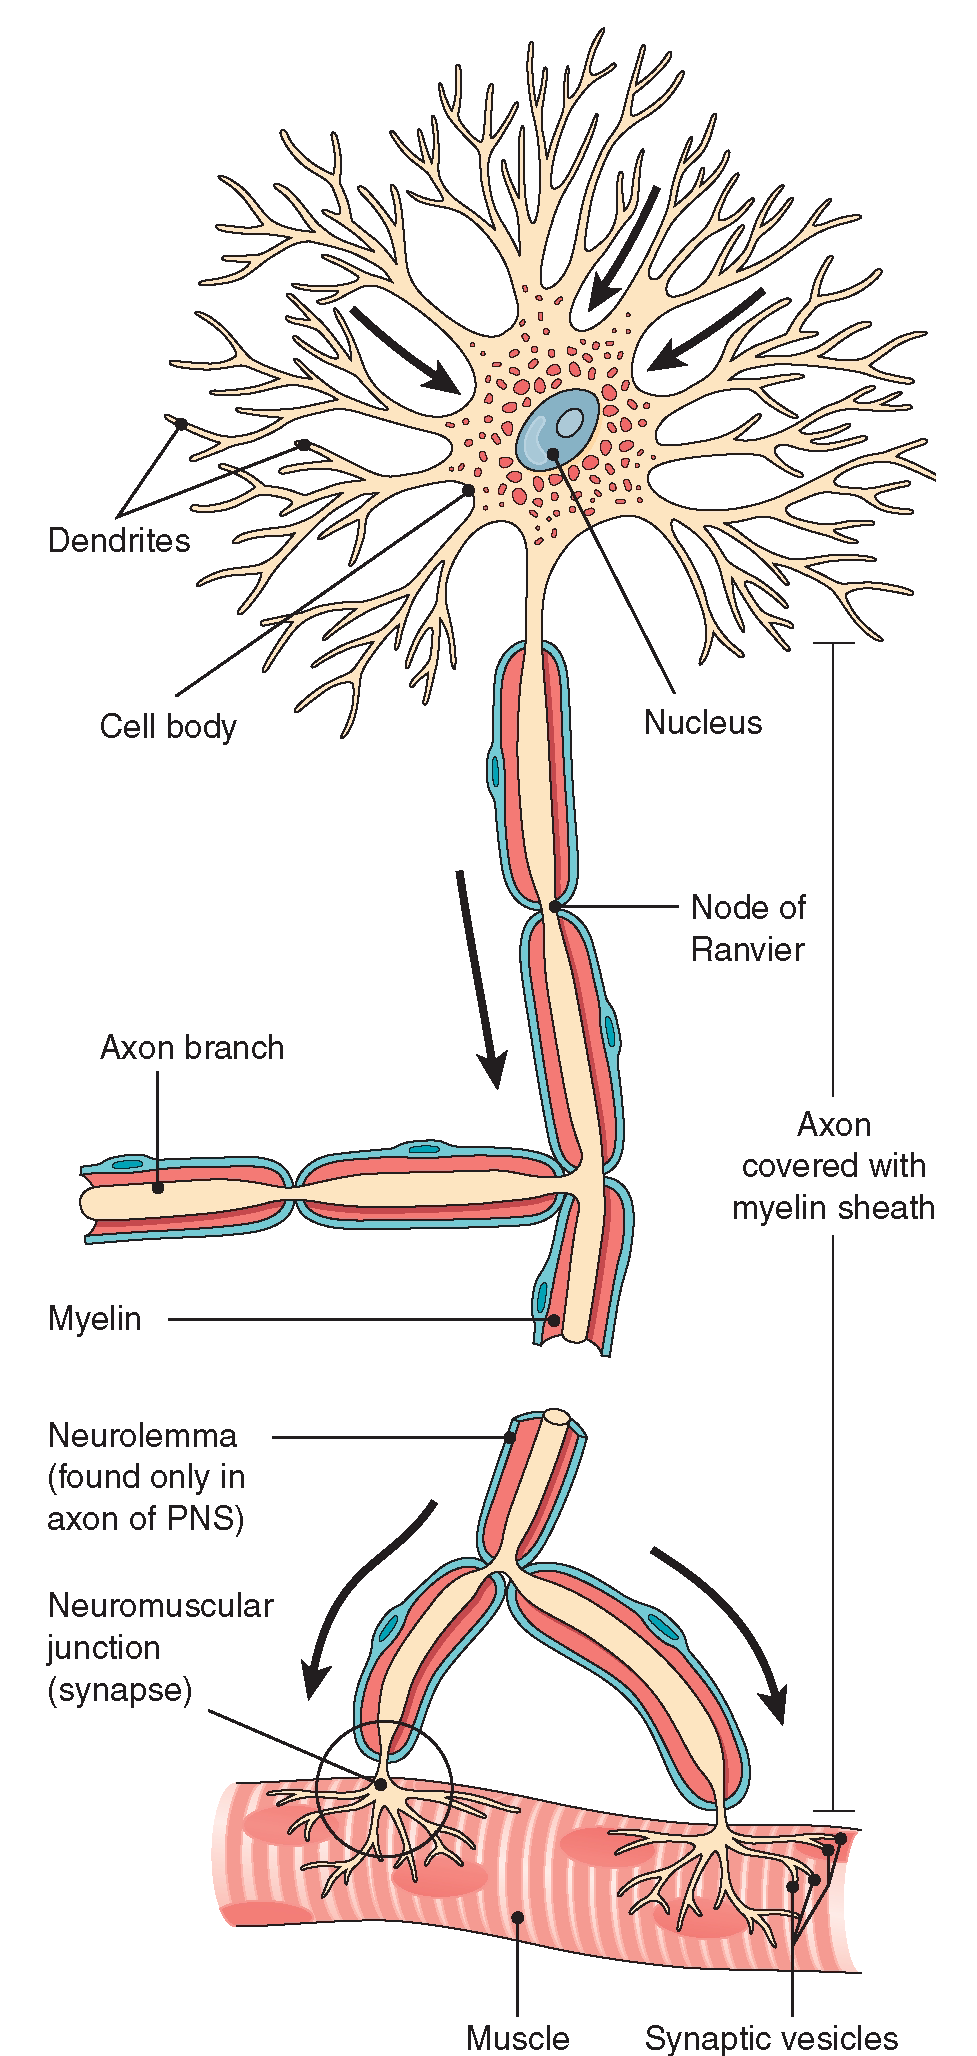 The nervous system structure and function nursing part 1 a myelinated motor neuron the break in the axon shows that the axon is ccuart Gallery